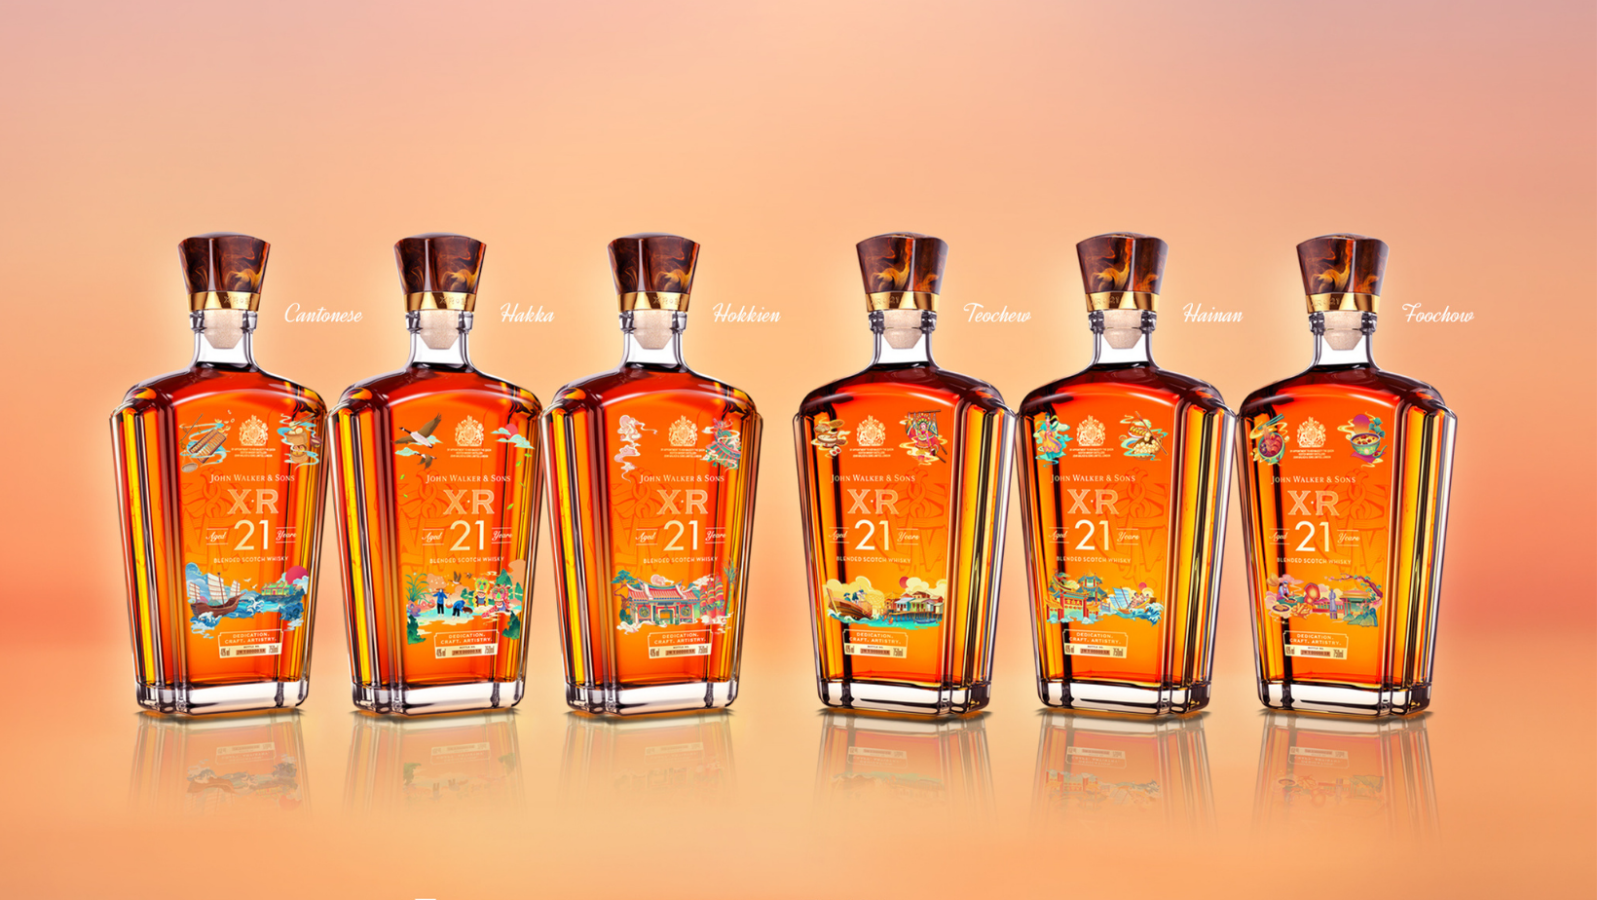 All about Diageo's John Walker &Sons XR21 Legacy Collection